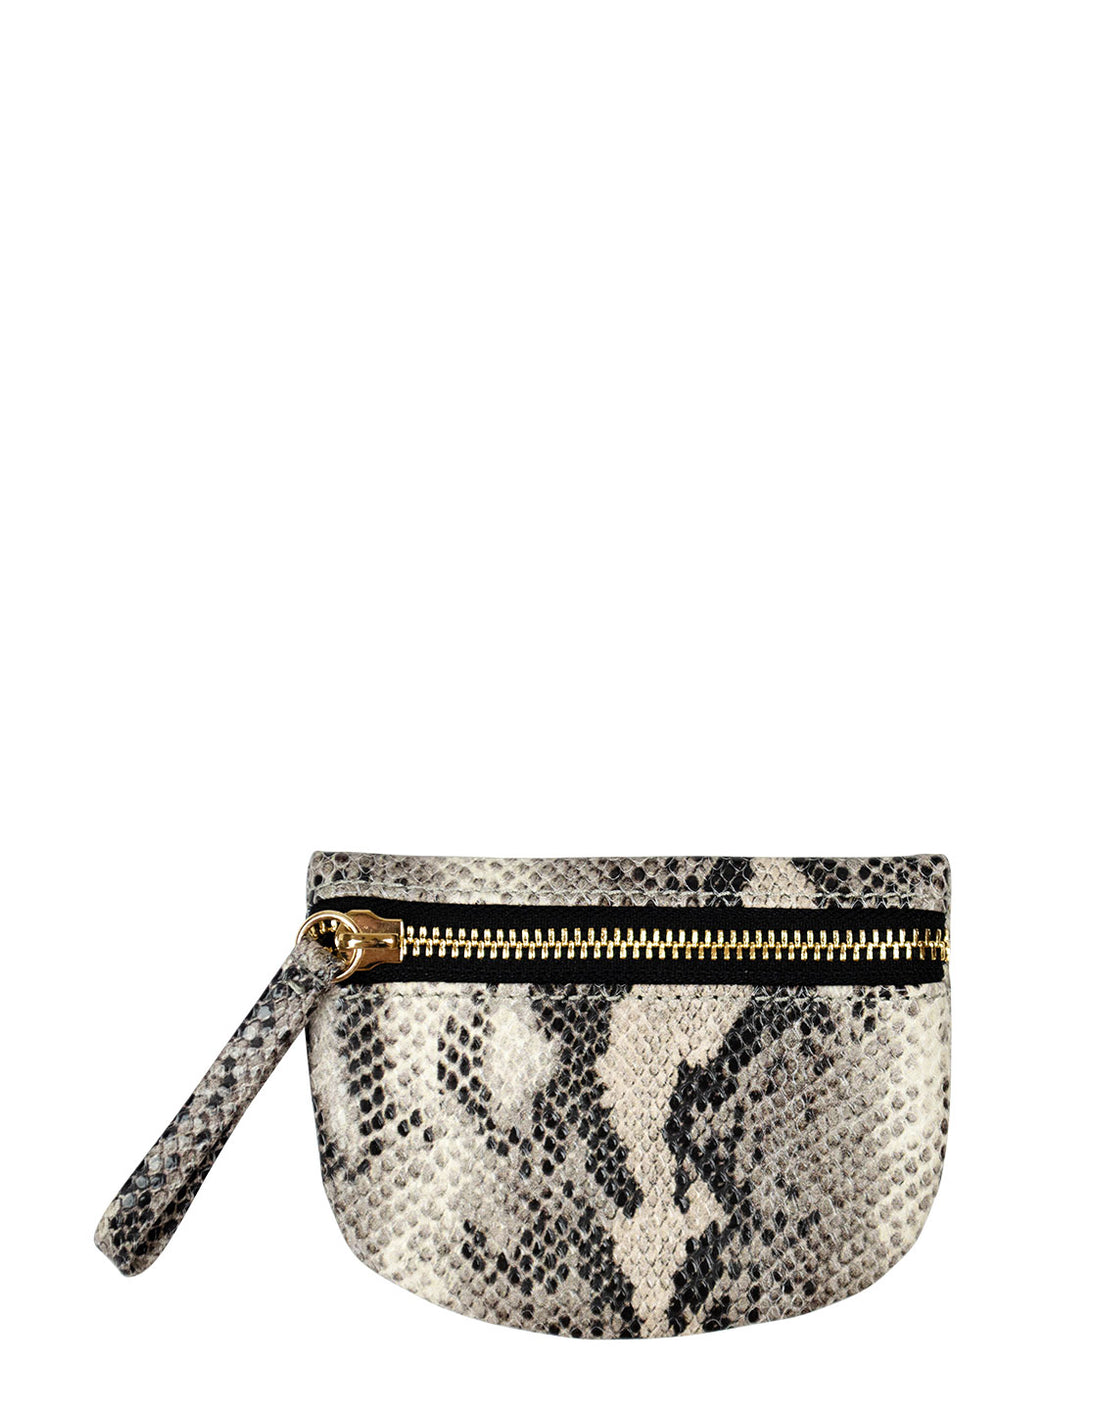 MVP Pouch in Black/Ivory Python